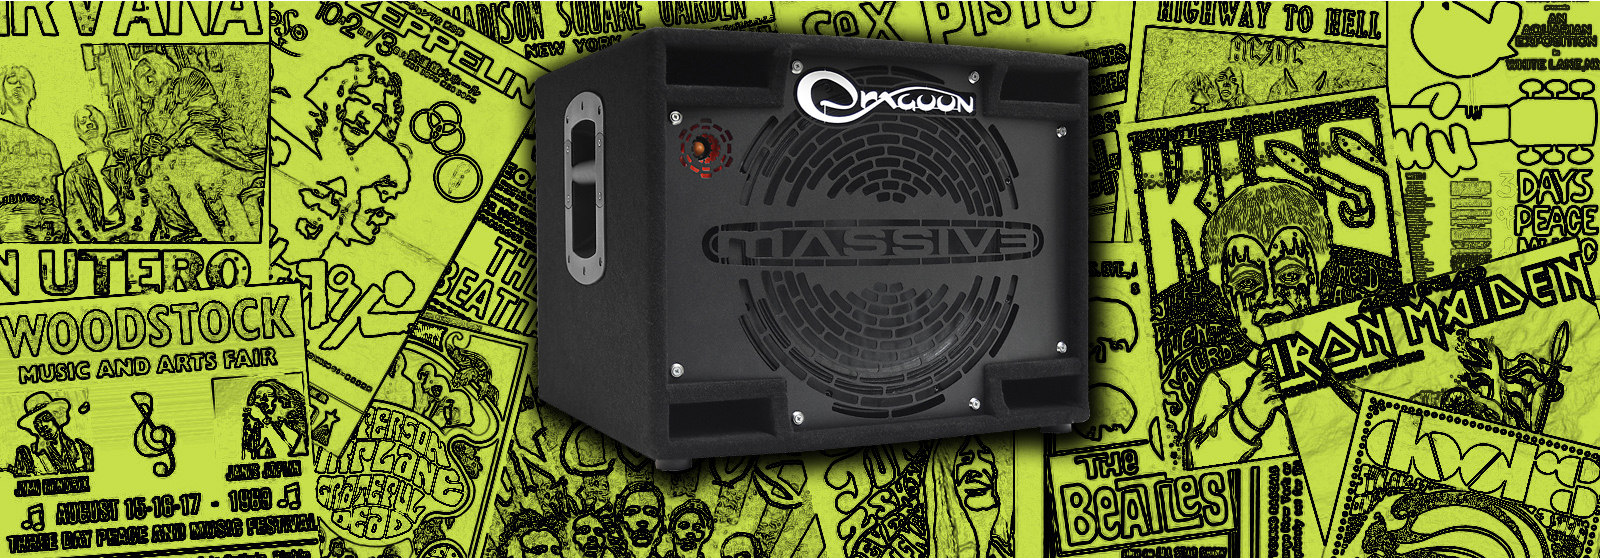 Dragoon - The Custom Speaker - DRAGOON-MASSIVE®-DM4115_20160331130342498831.jpg